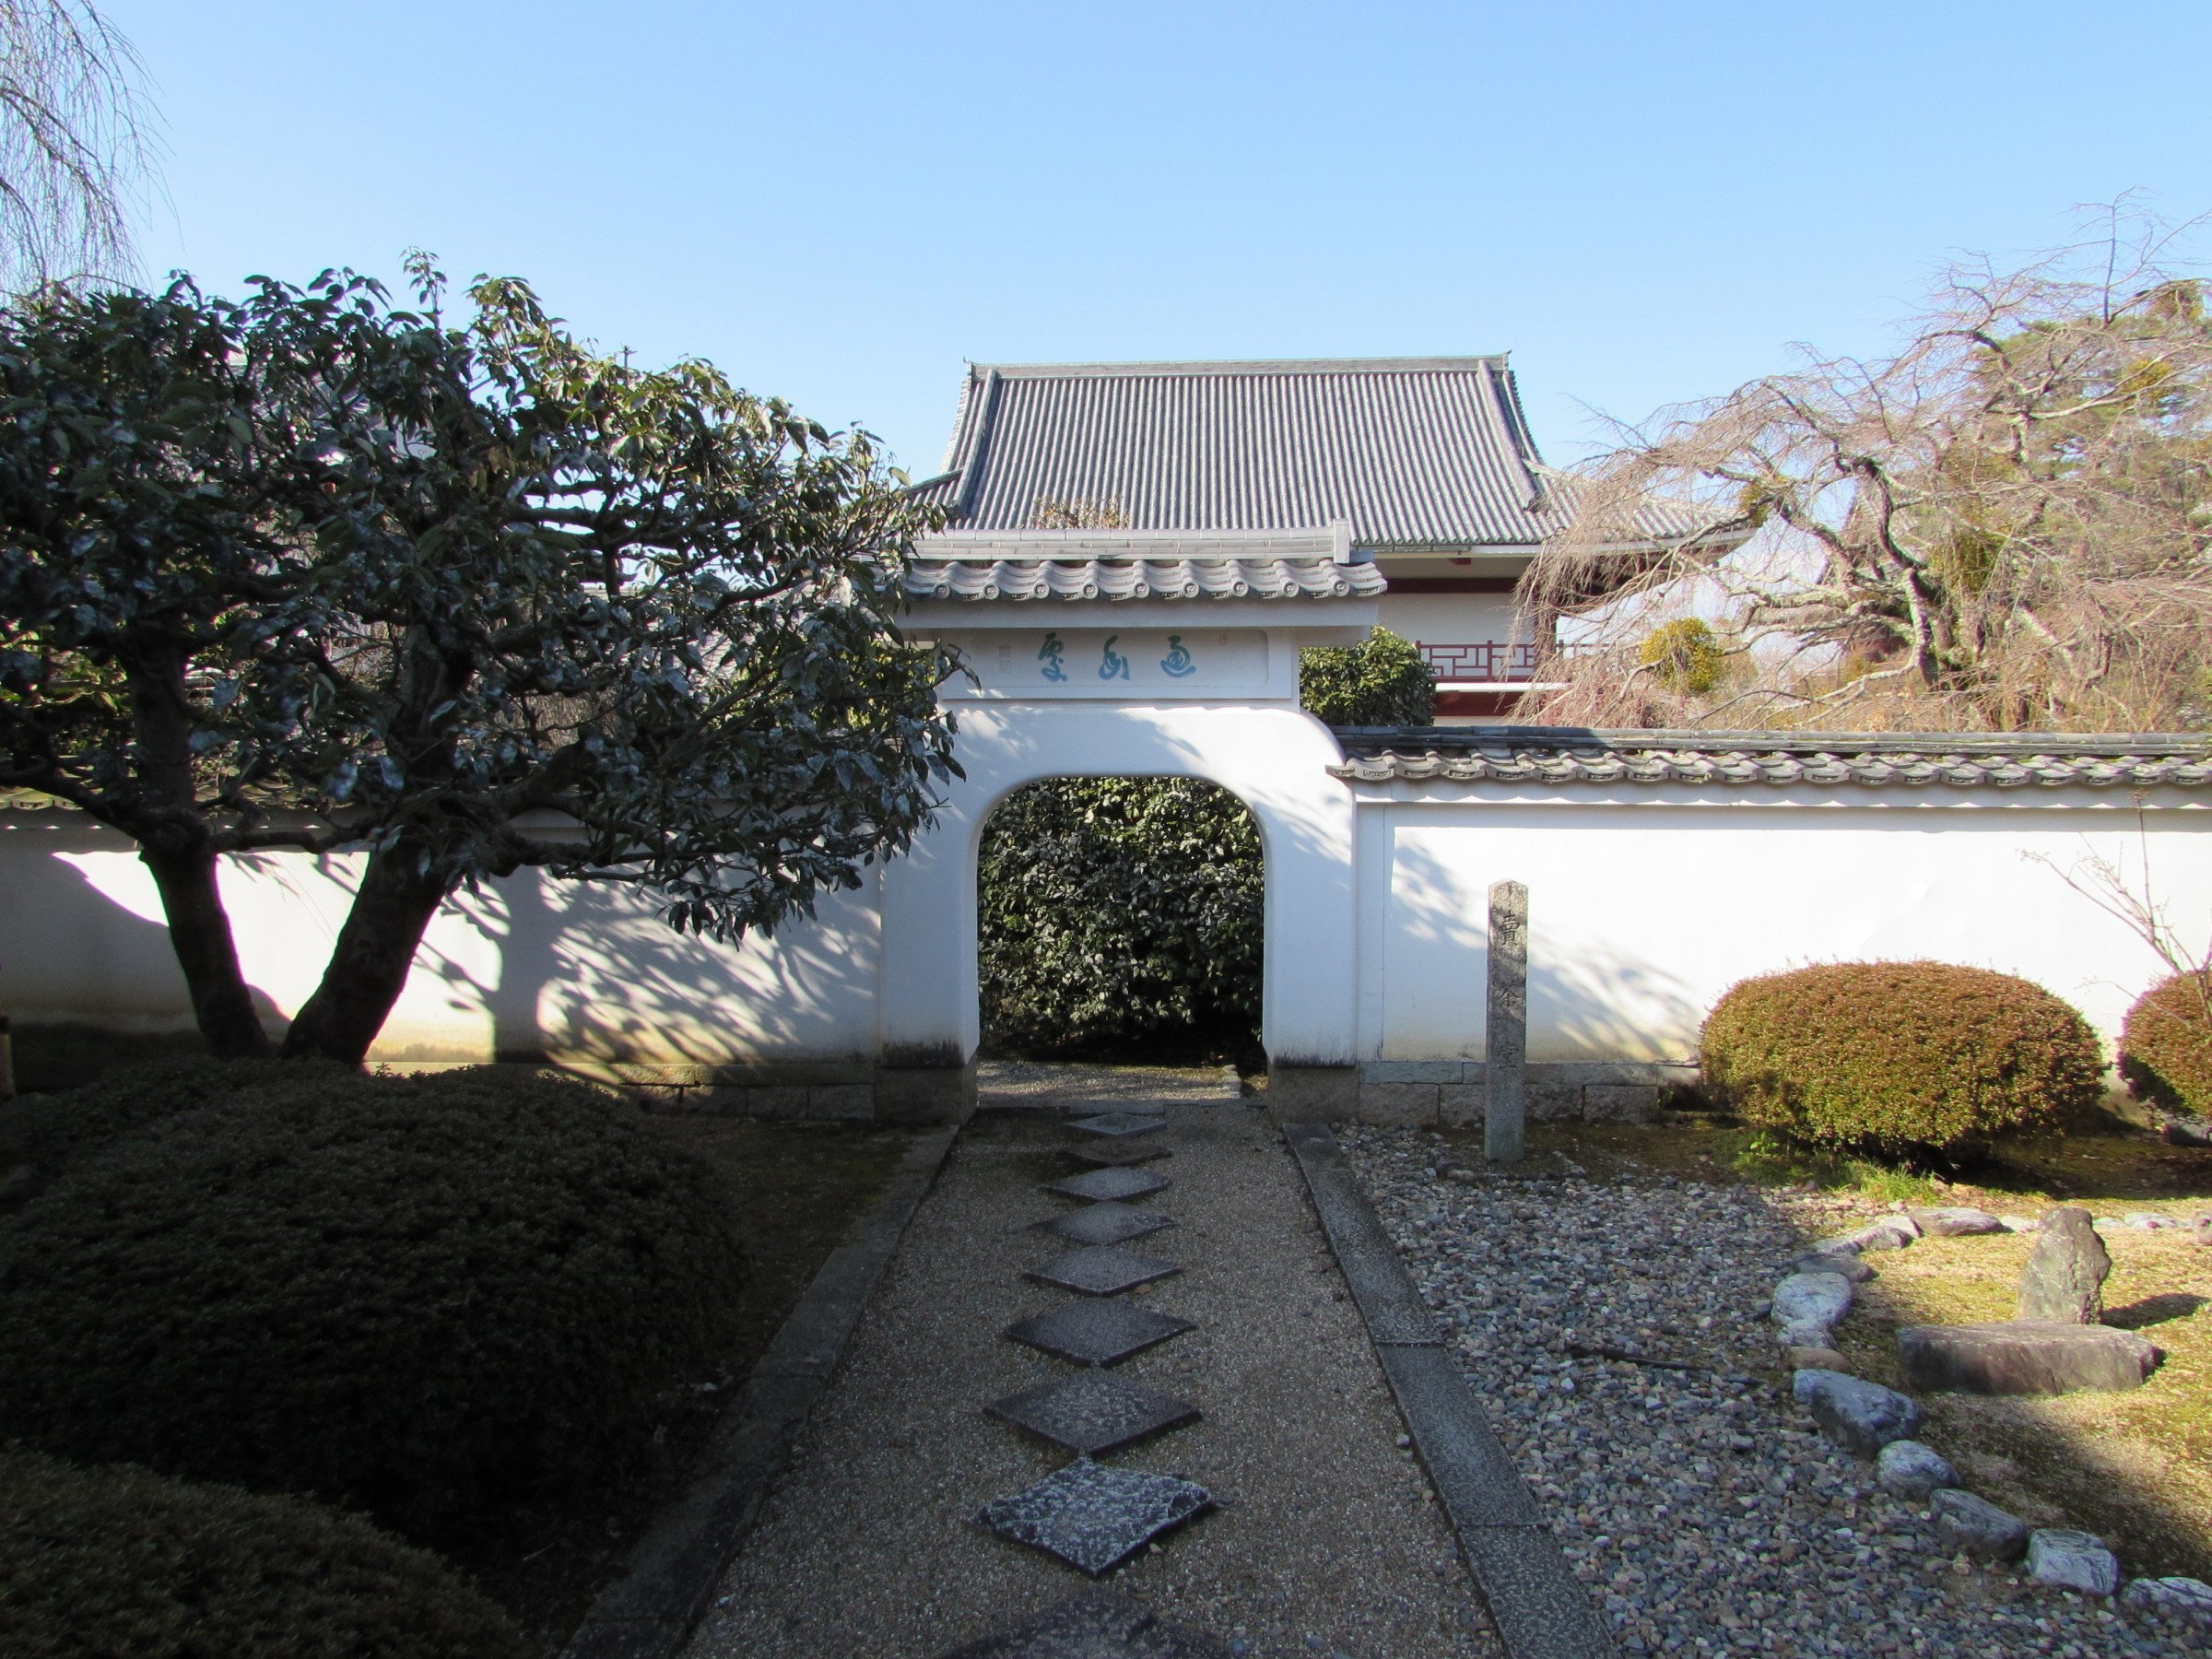 Throughout the temple complex you will find architecture that's a little different to that found at other Buddhist temples in Japan. These white walls and curvaceous doorways are an example of the temple's lingering Chinese influence.